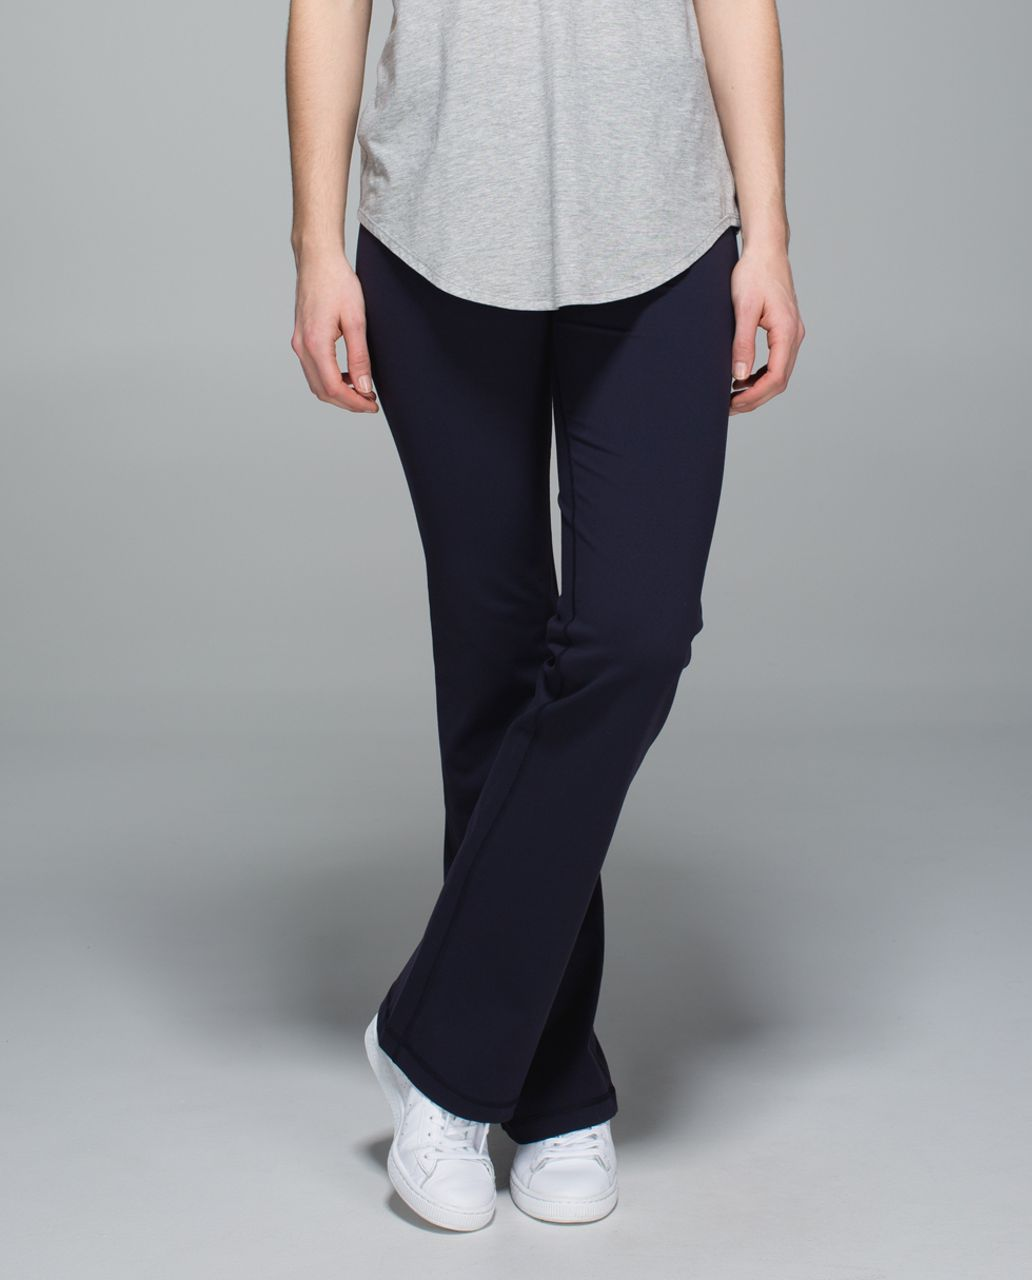 Lululemon Groove Pant II (Roll Down - Tall) - Naval Blue